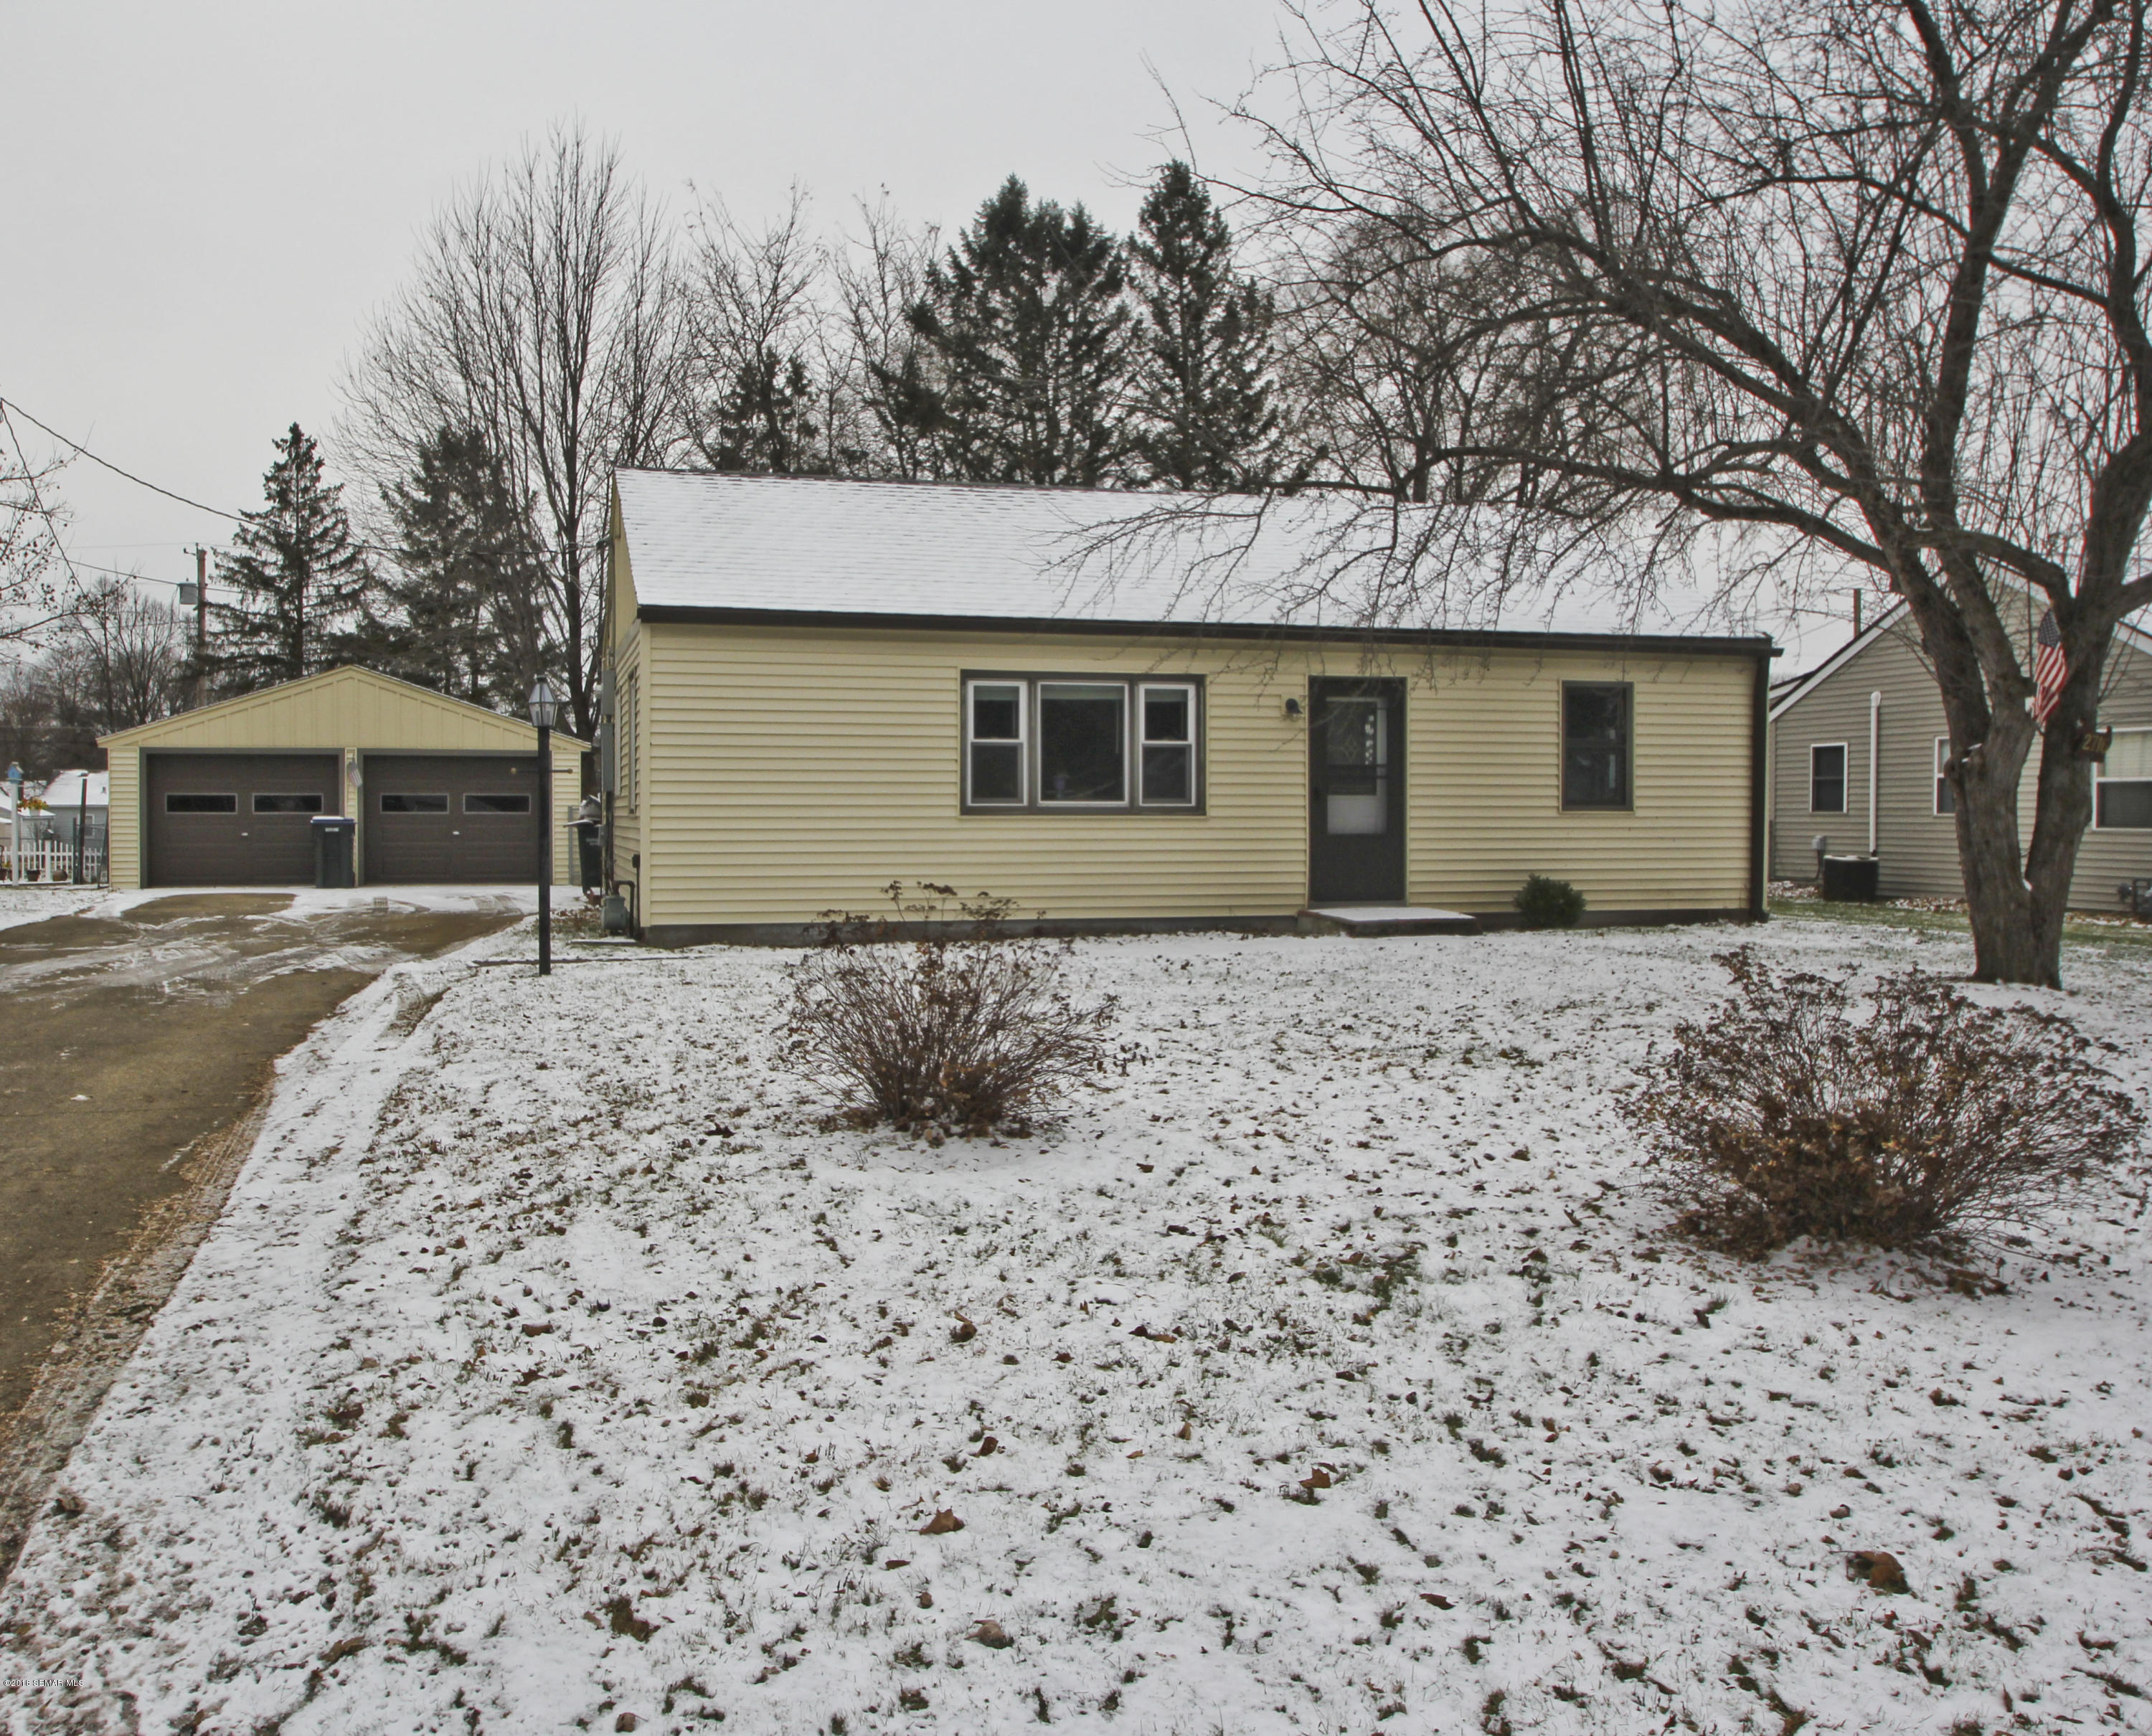 2716 Markay,Rochester,Minnesota 55904,2 Bedrooms Bedrooms,1 BathroomBathrooms,Single family residence,Markay,4092420